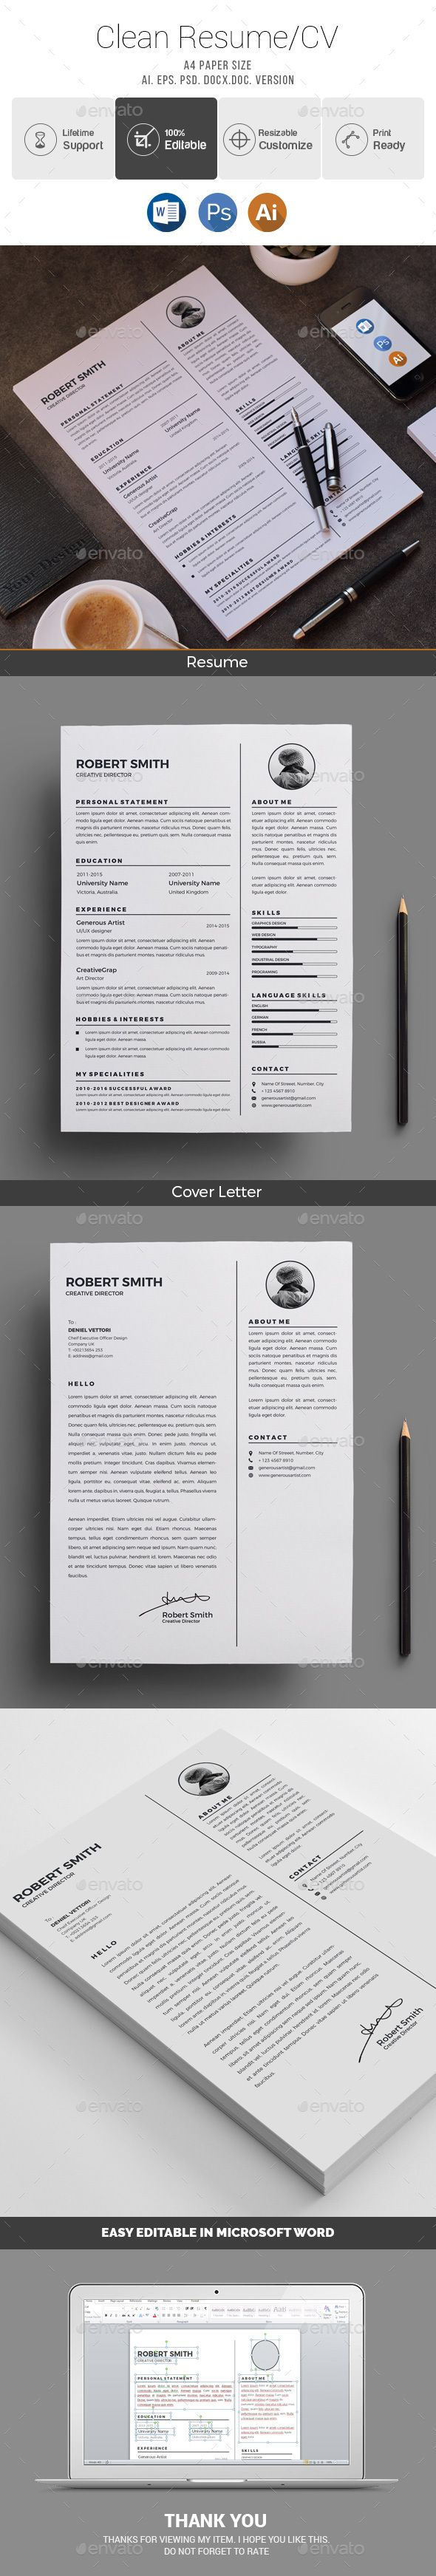 436 best Resume images on Pinterest | Resume templates, Cv ...